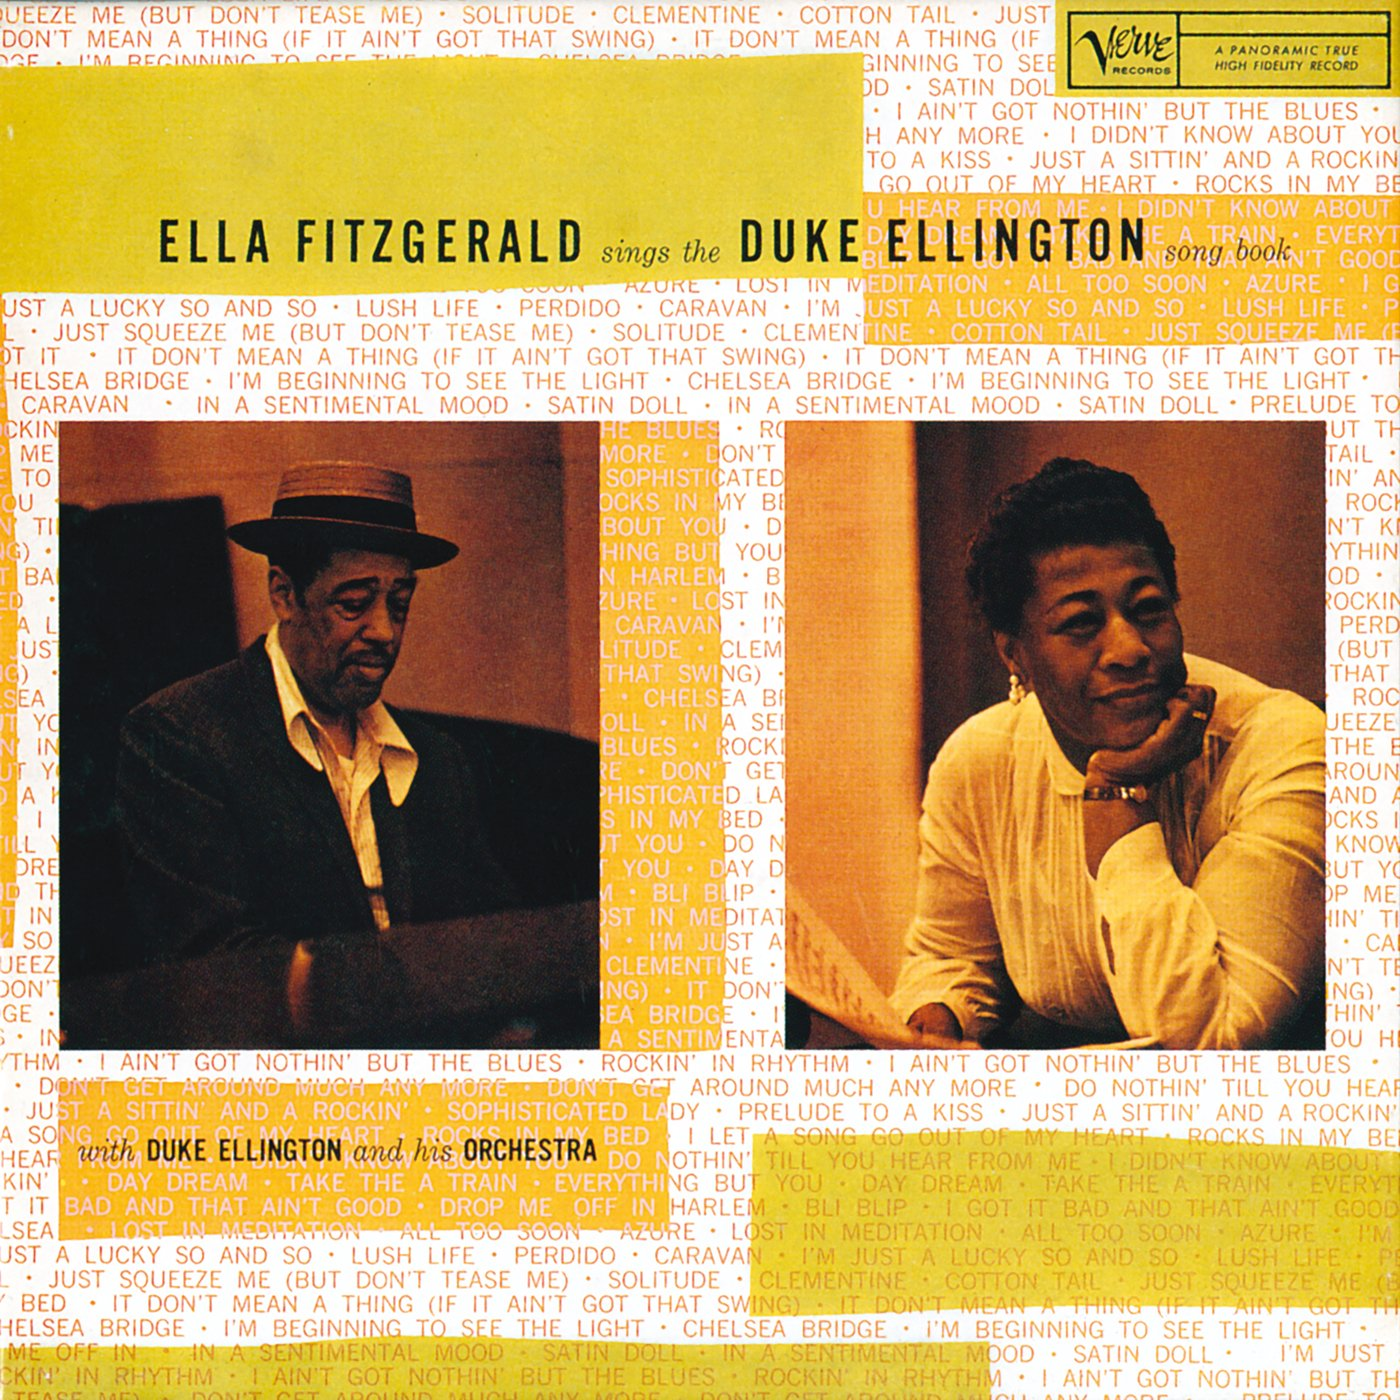 Ella Fitzgerald Sings the Duke Ellington Songbook by Polygram Records